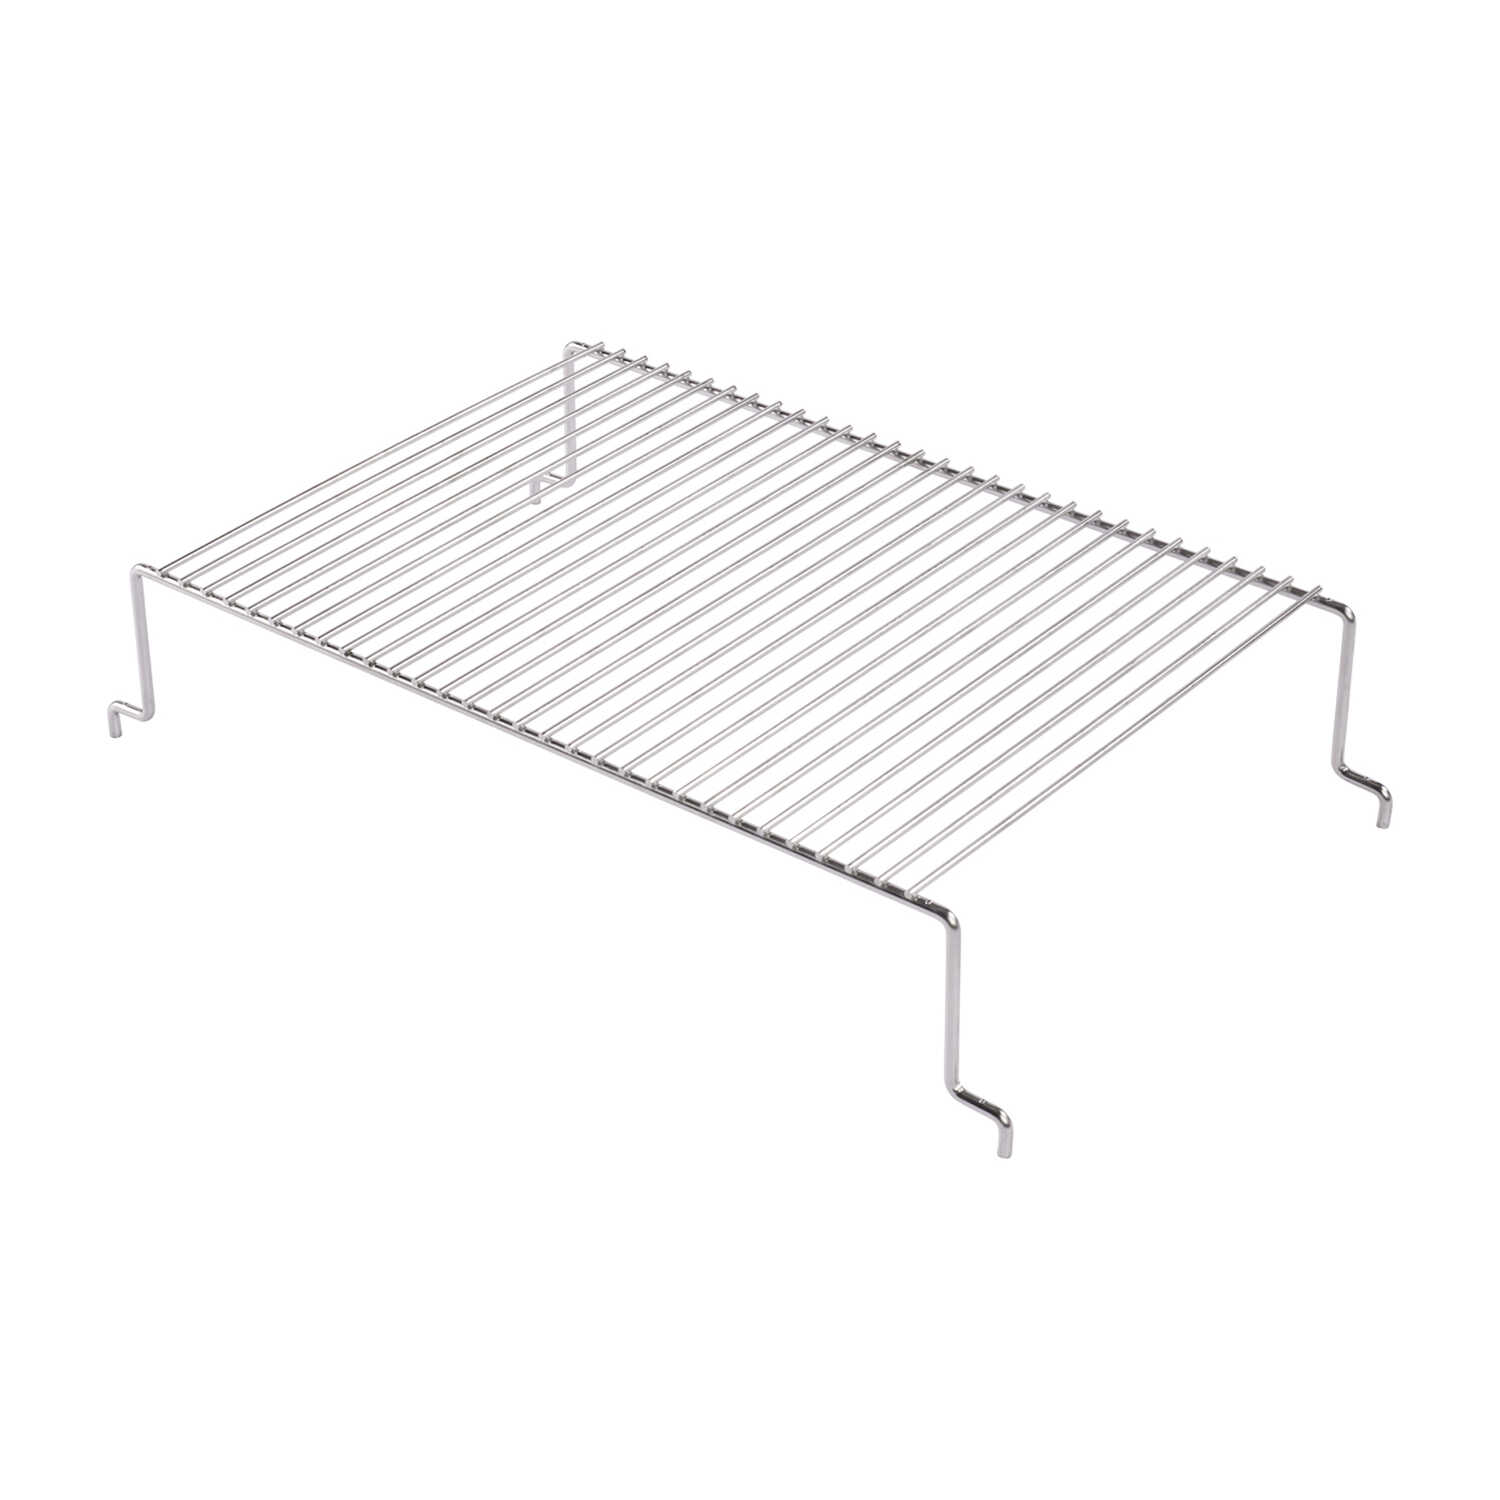 PK Grills  11.5 in. W x 16 in. D CookMore  Grill Expander Grid